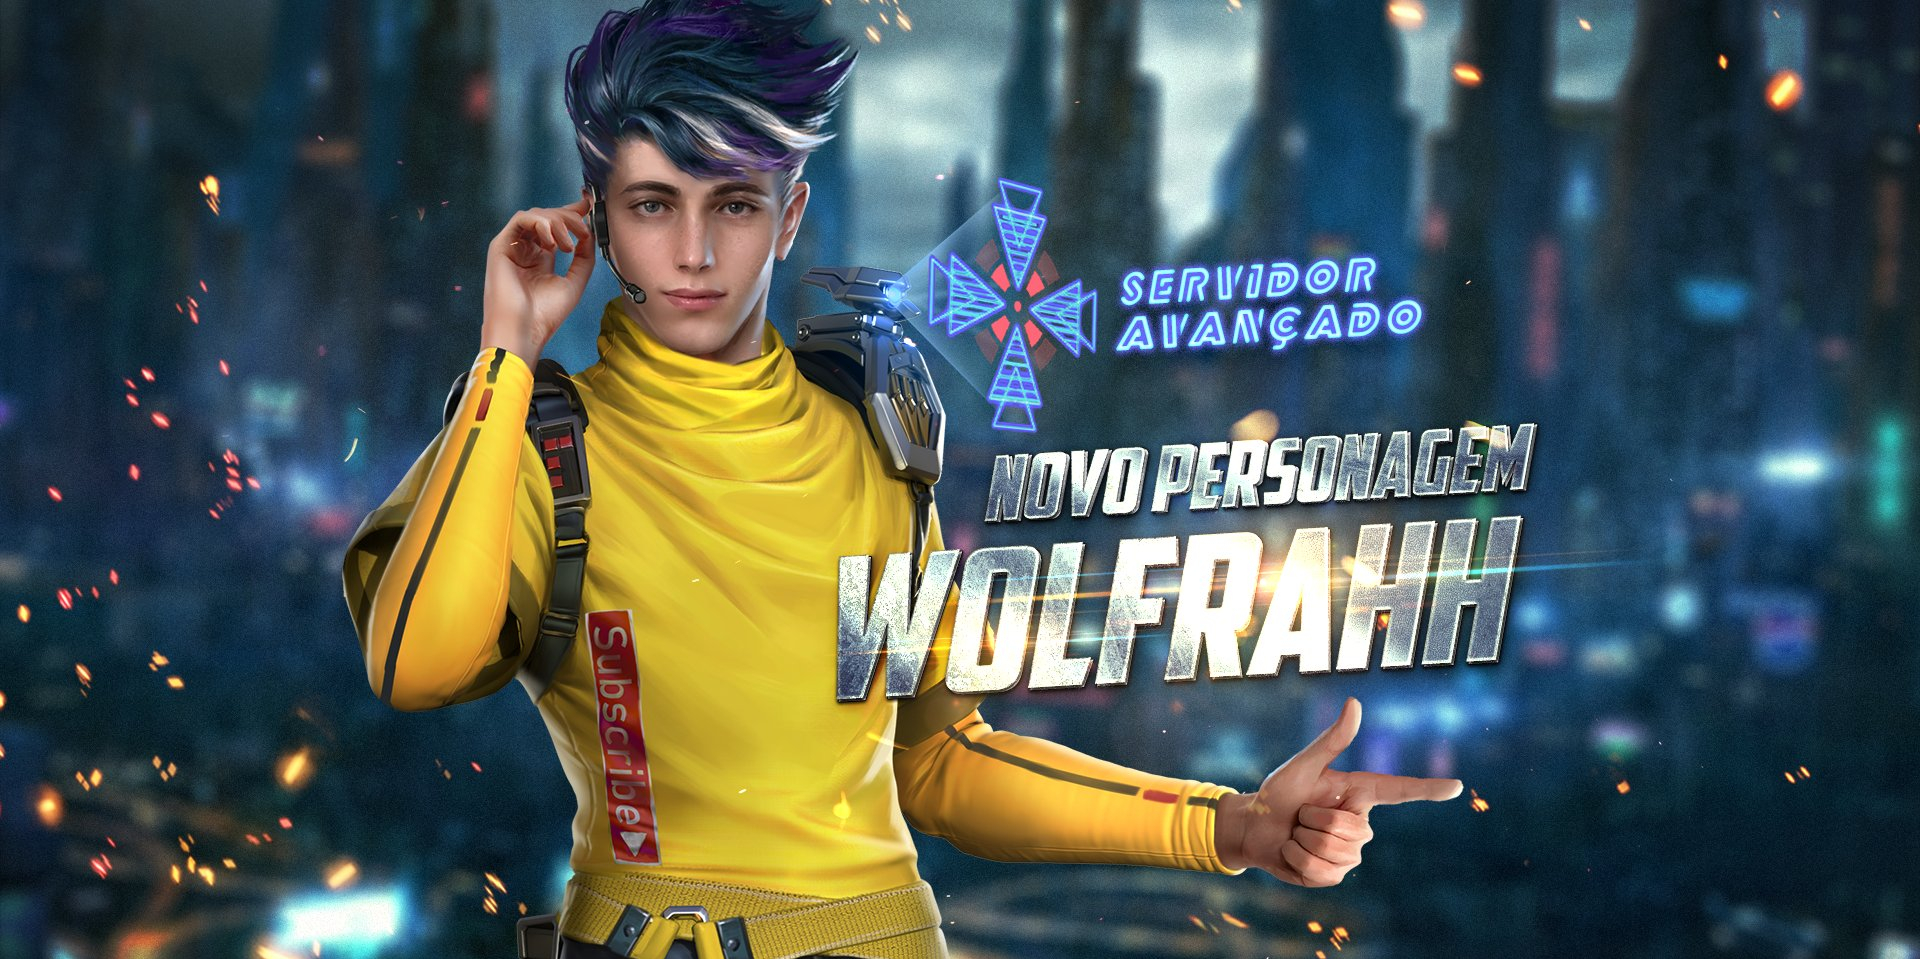 Garena Free Fire announces latest character, Wolfrahh, and achieves a new peak of 80+ million daily active users